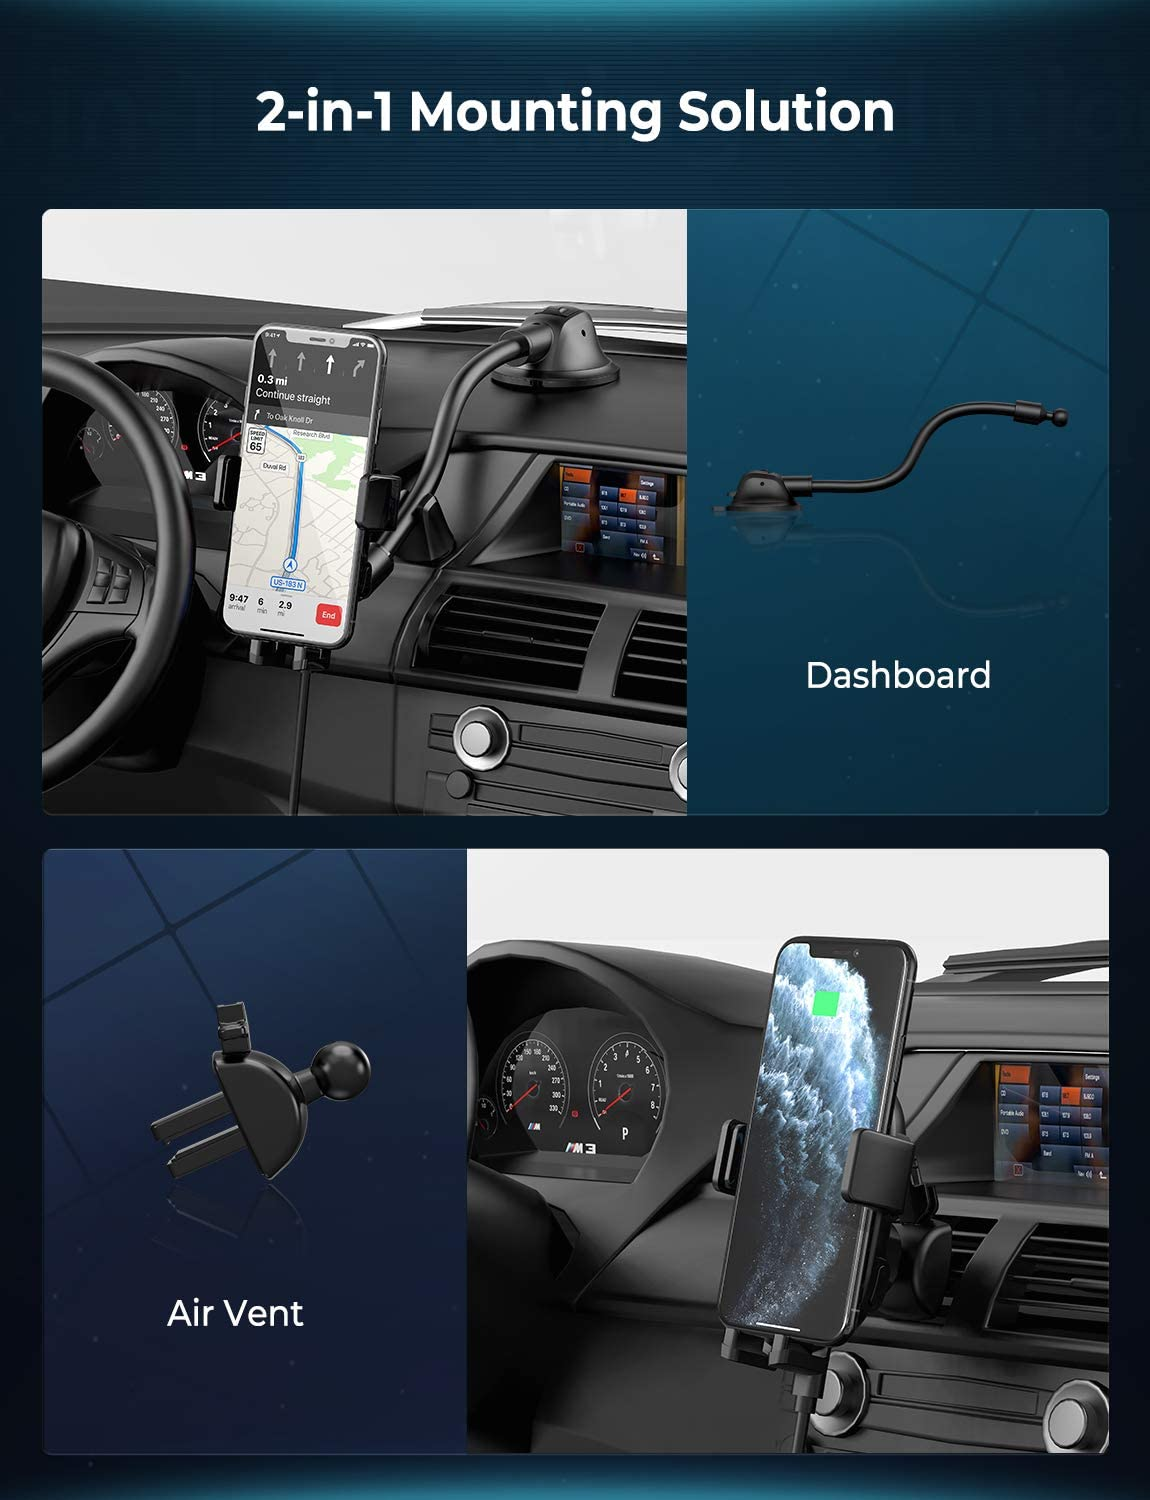 Galaxy Note 2-in-1 Auto-Clamping Car Phone Mount 10W//7.5W Qi Fast Charging Phone Holder Air Vent and Dashboard Car Mount Compatible with iPhone 11//11 Pro//Xs Max//XS//XR//X Mpow Wireless Car Charger